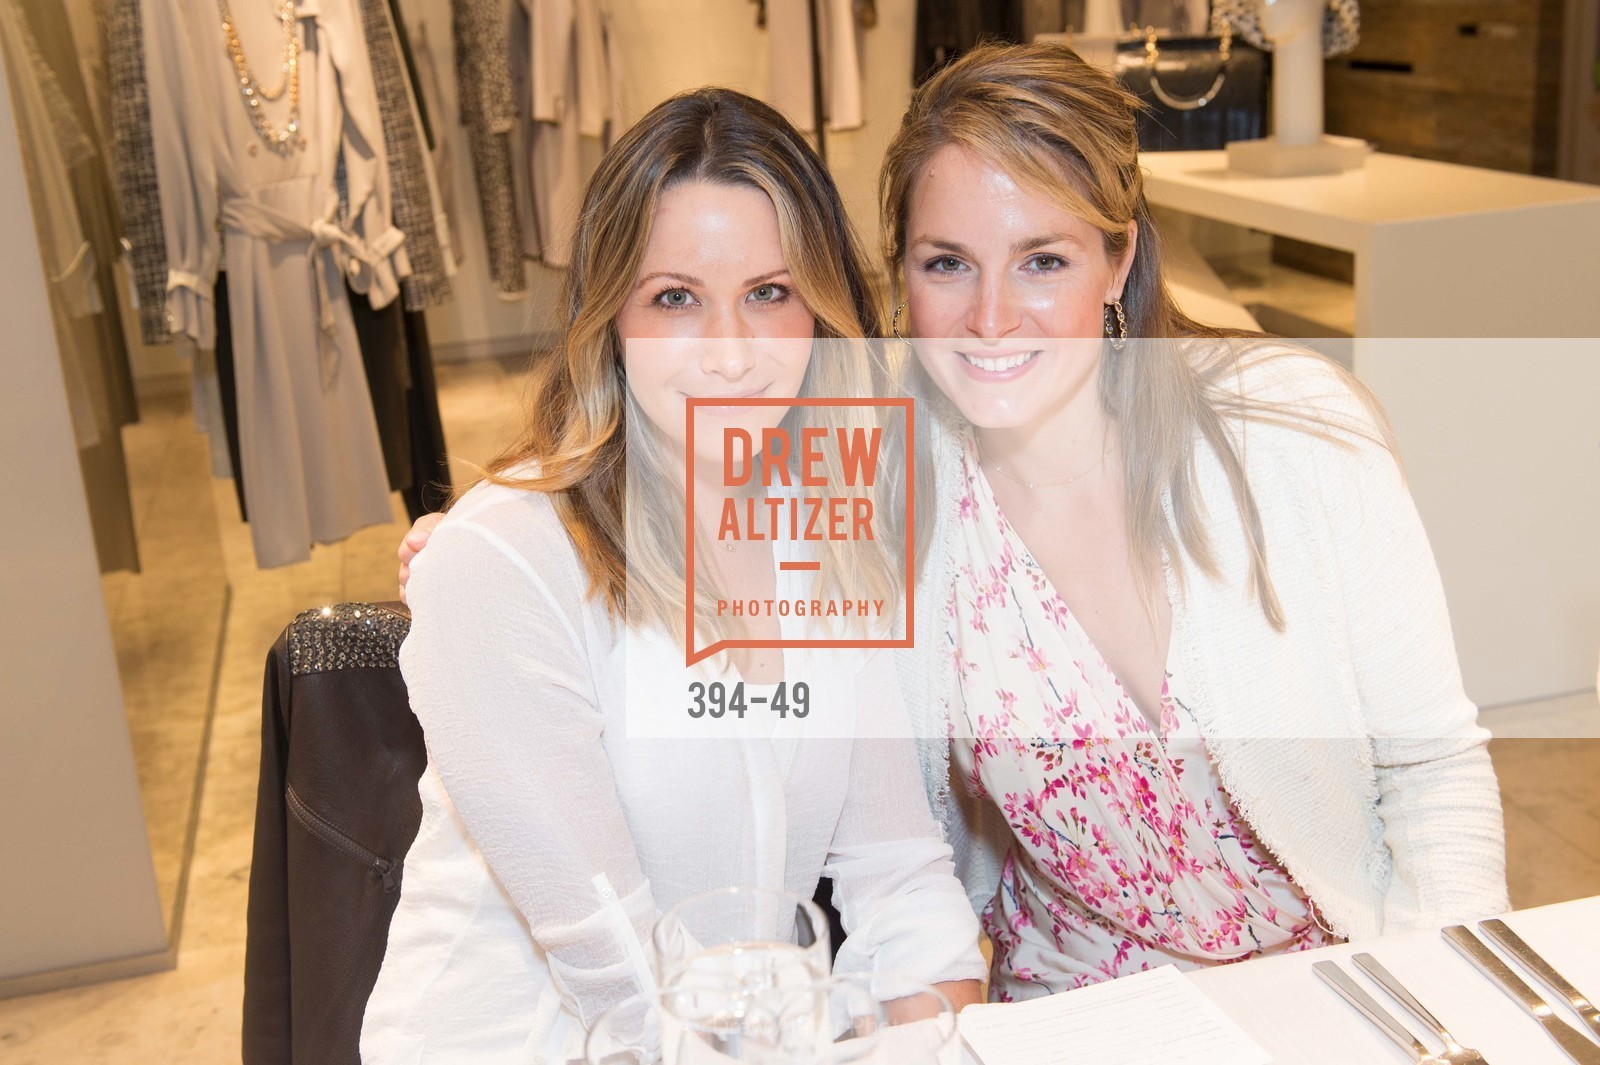 Kimberly Hyman, Ashley Wilcox, Luncheon Hosted by Max Mara, Max Mara. 175 Post St, San Francisco, CA 94108, April 21st, 2015,Drew Altizer, Drew Altizer Photography, full-service agency, private events, San Francisco photographer, photographer california